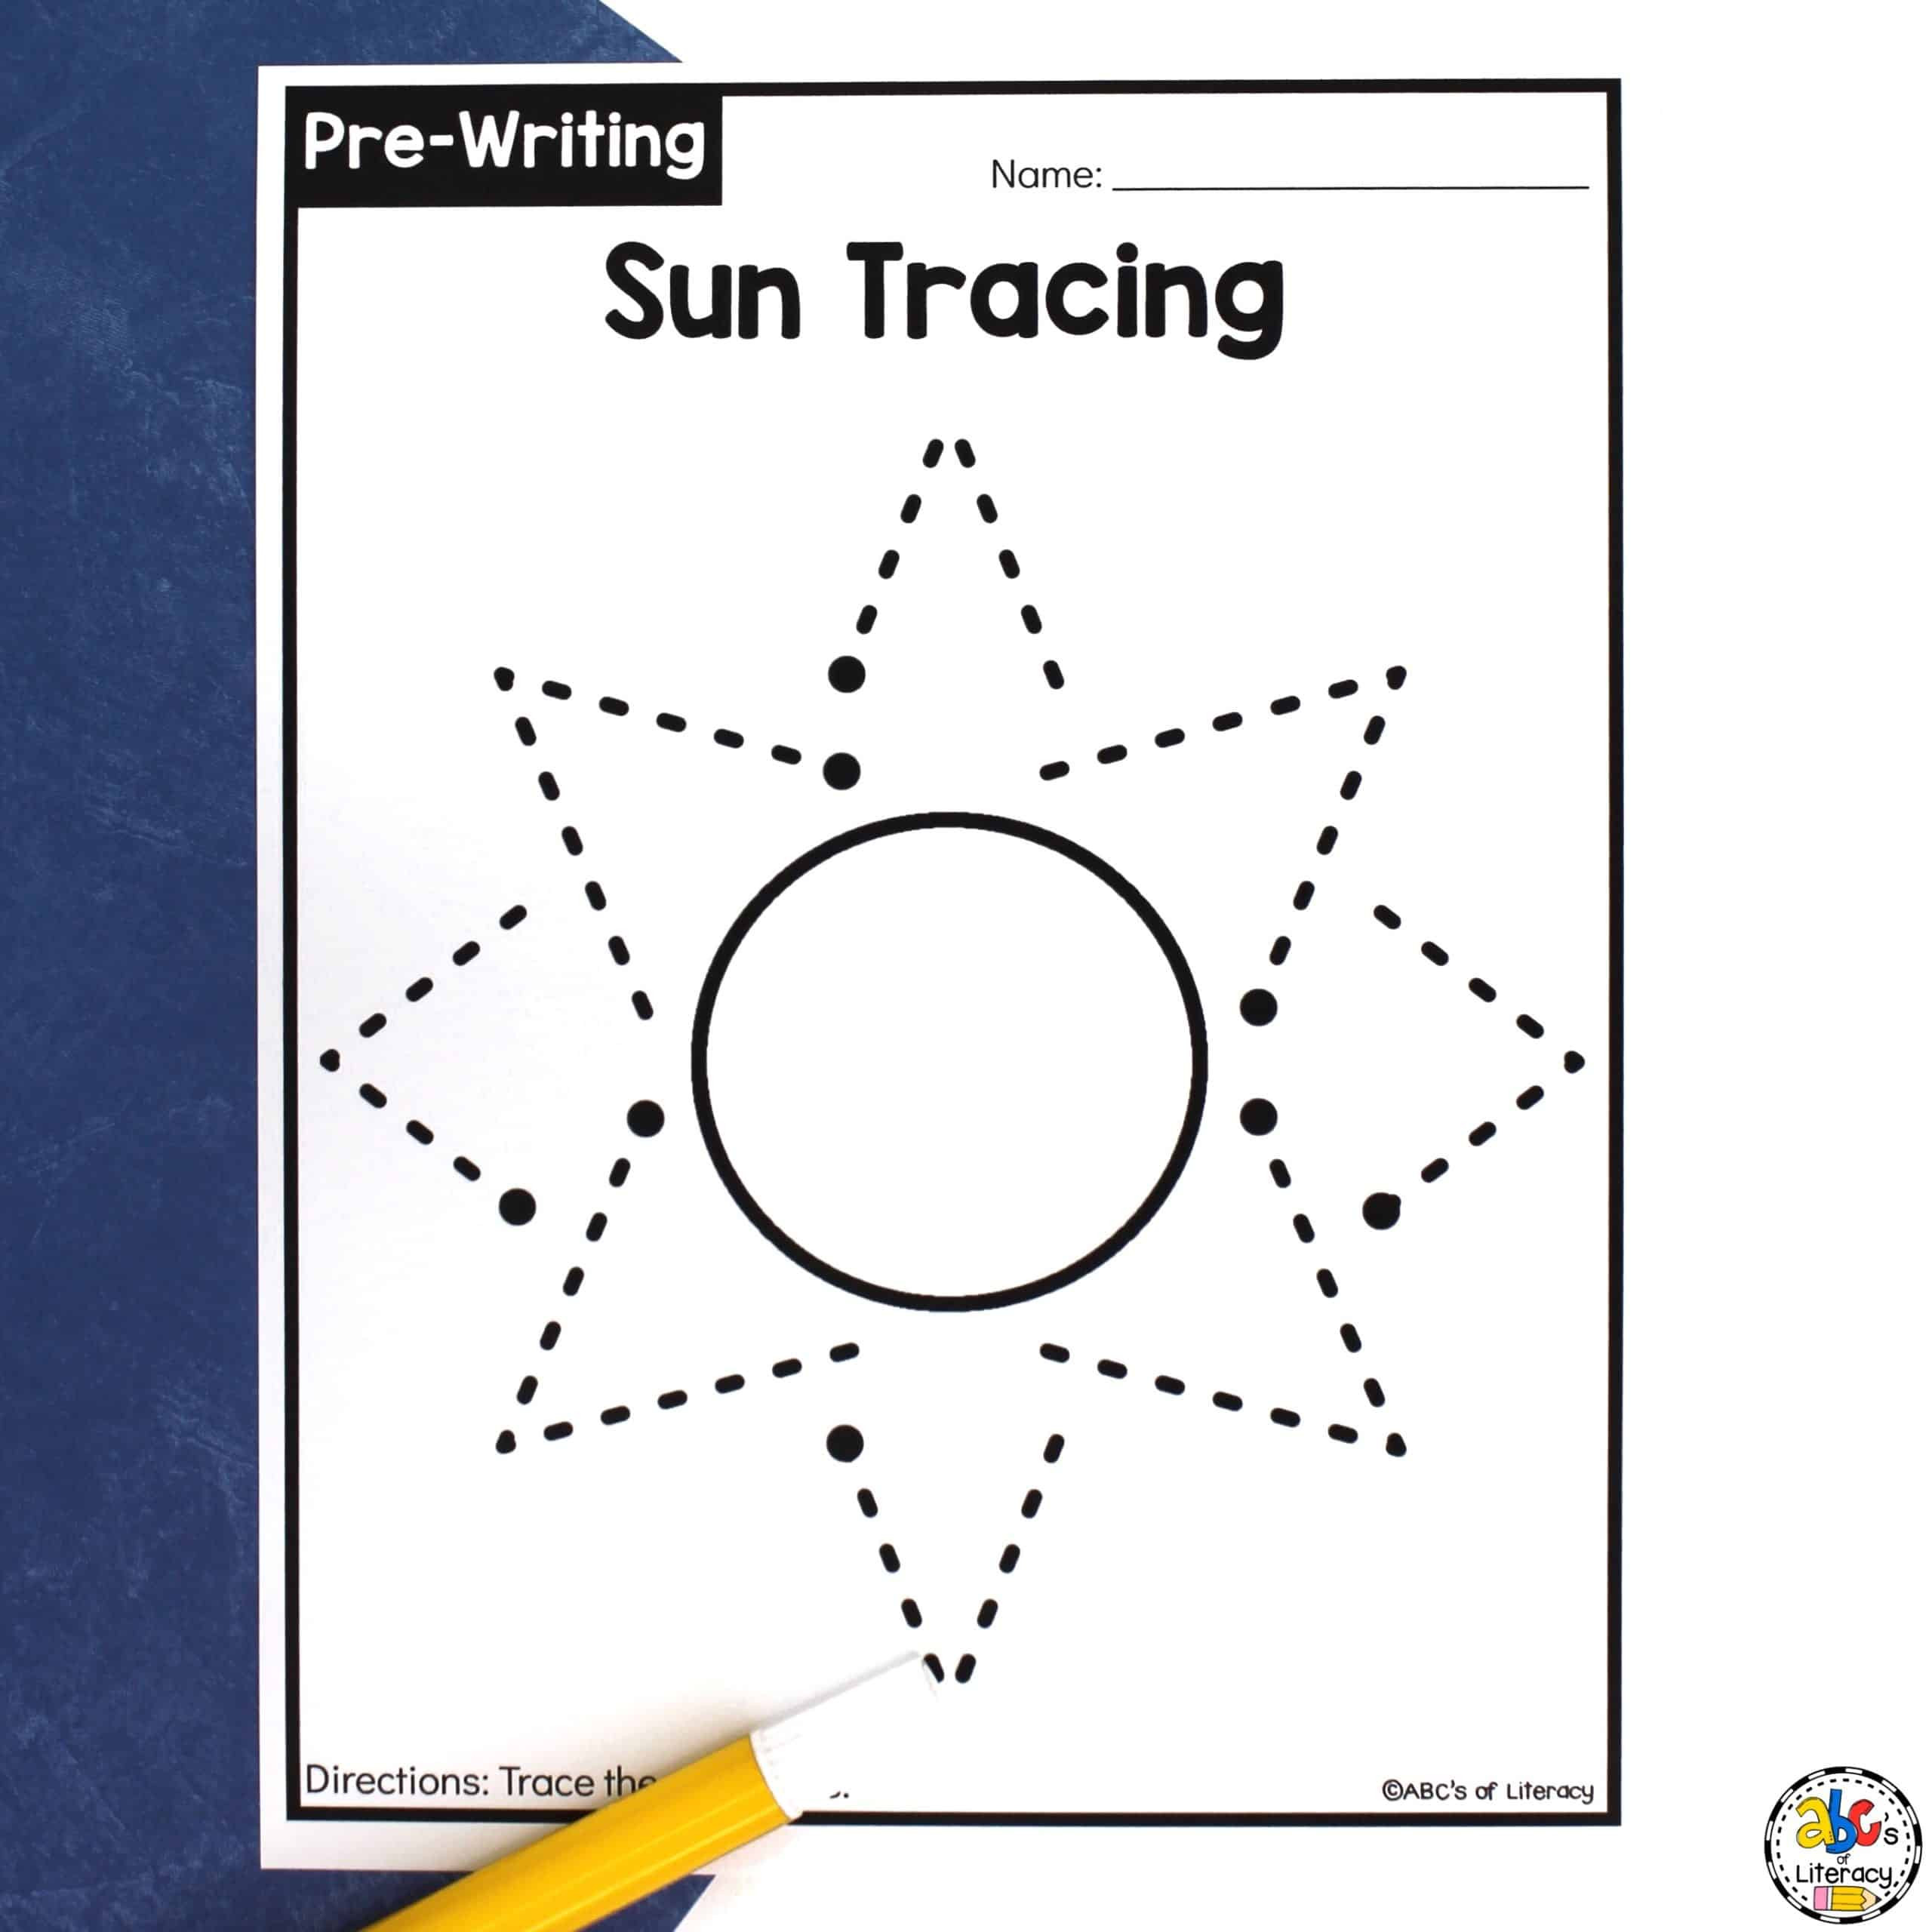 Fine Motor Skills Worksheets Sun Tracing Worksheets Pre Writing Activity for Preschoolers